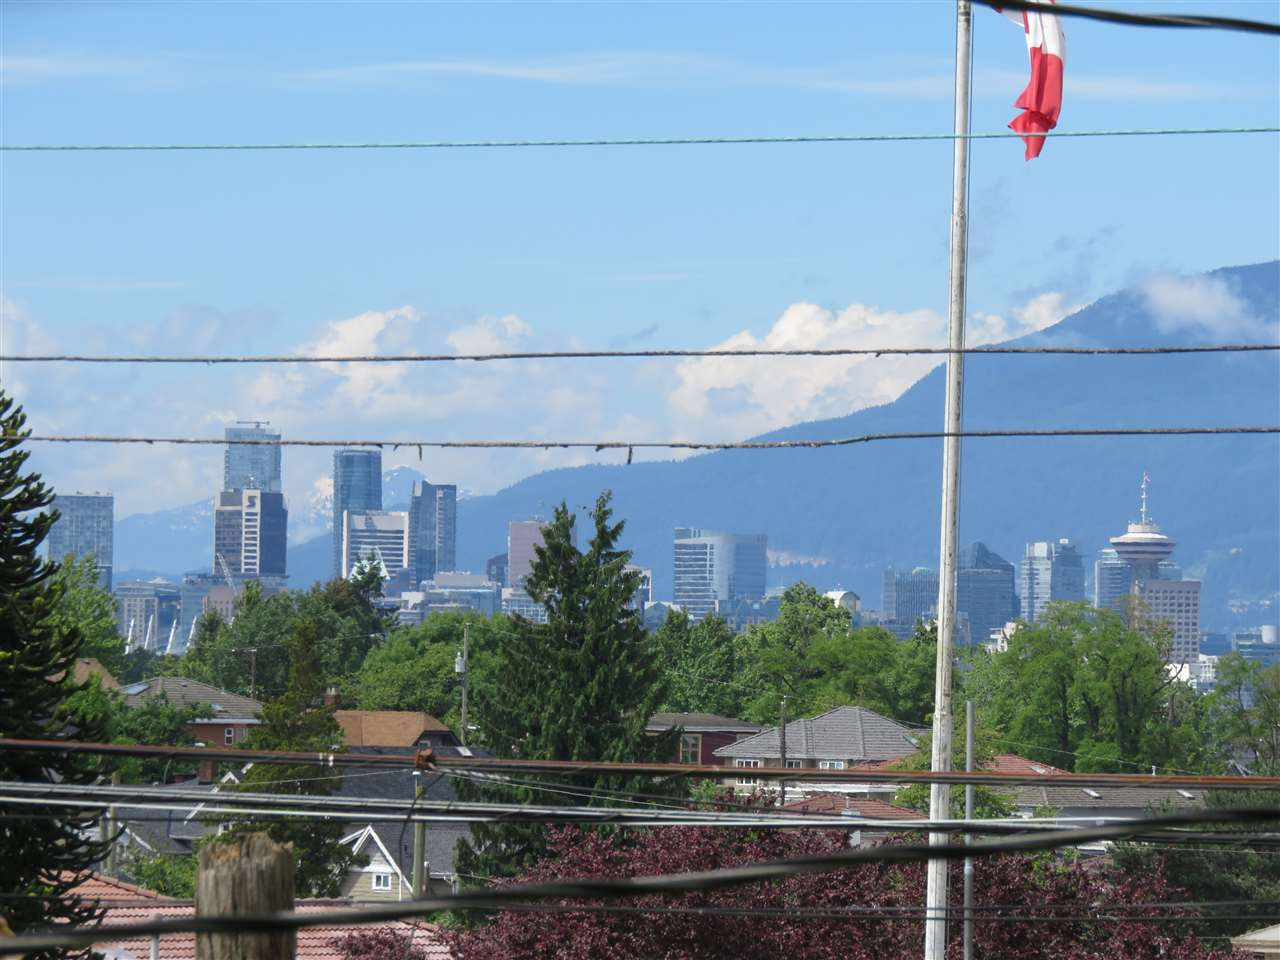 North-west view to Downtown Vancouver!